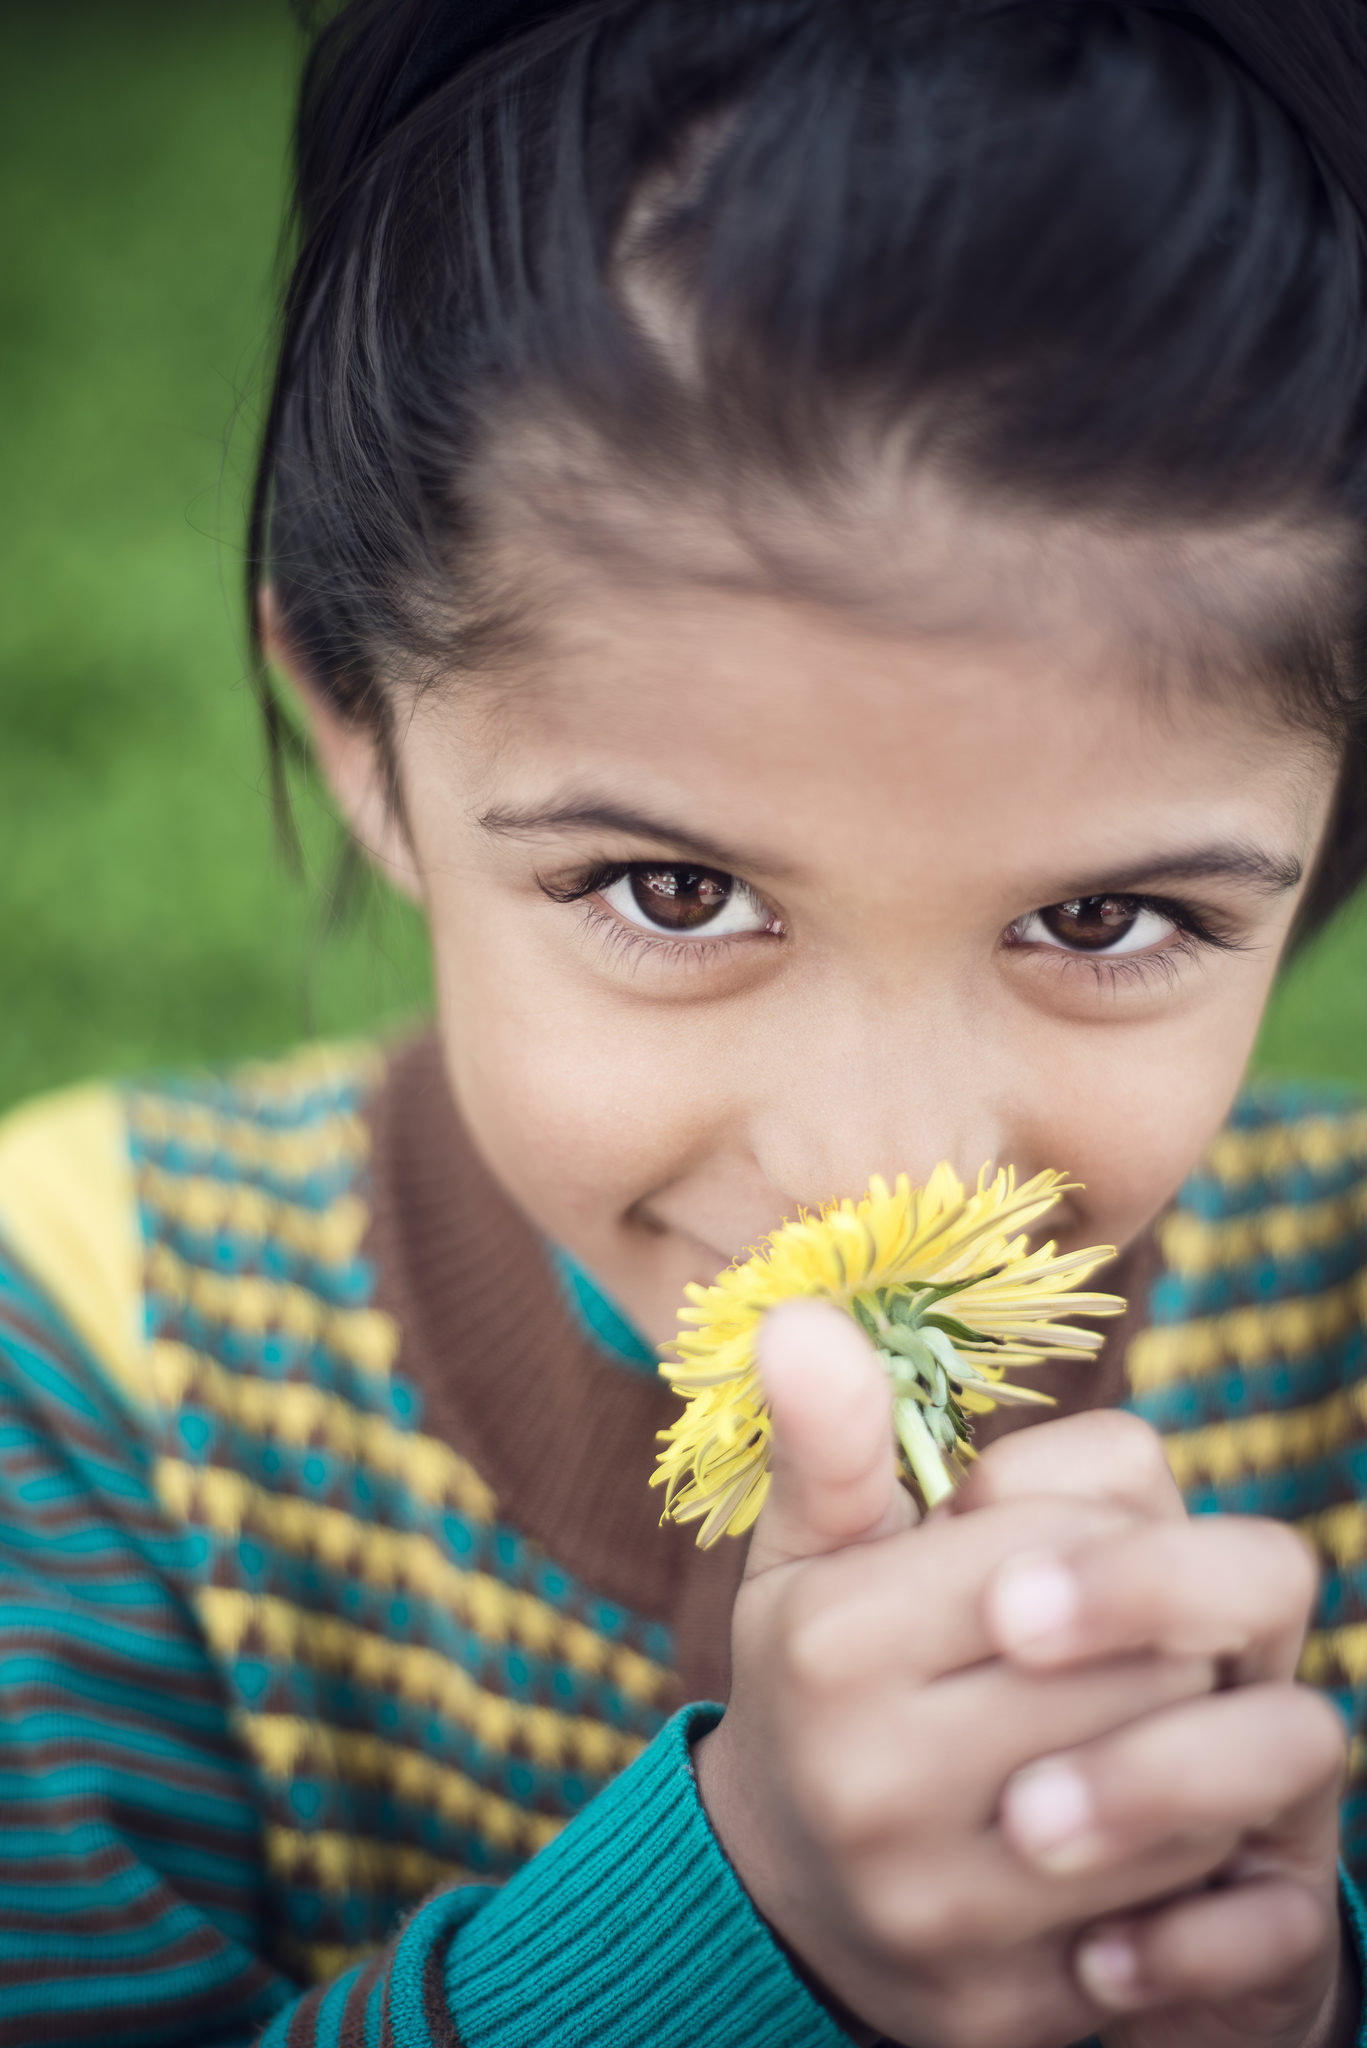 CRDT-kidhappy-12, outdoors, diversity, smile, nature, spring, flowers